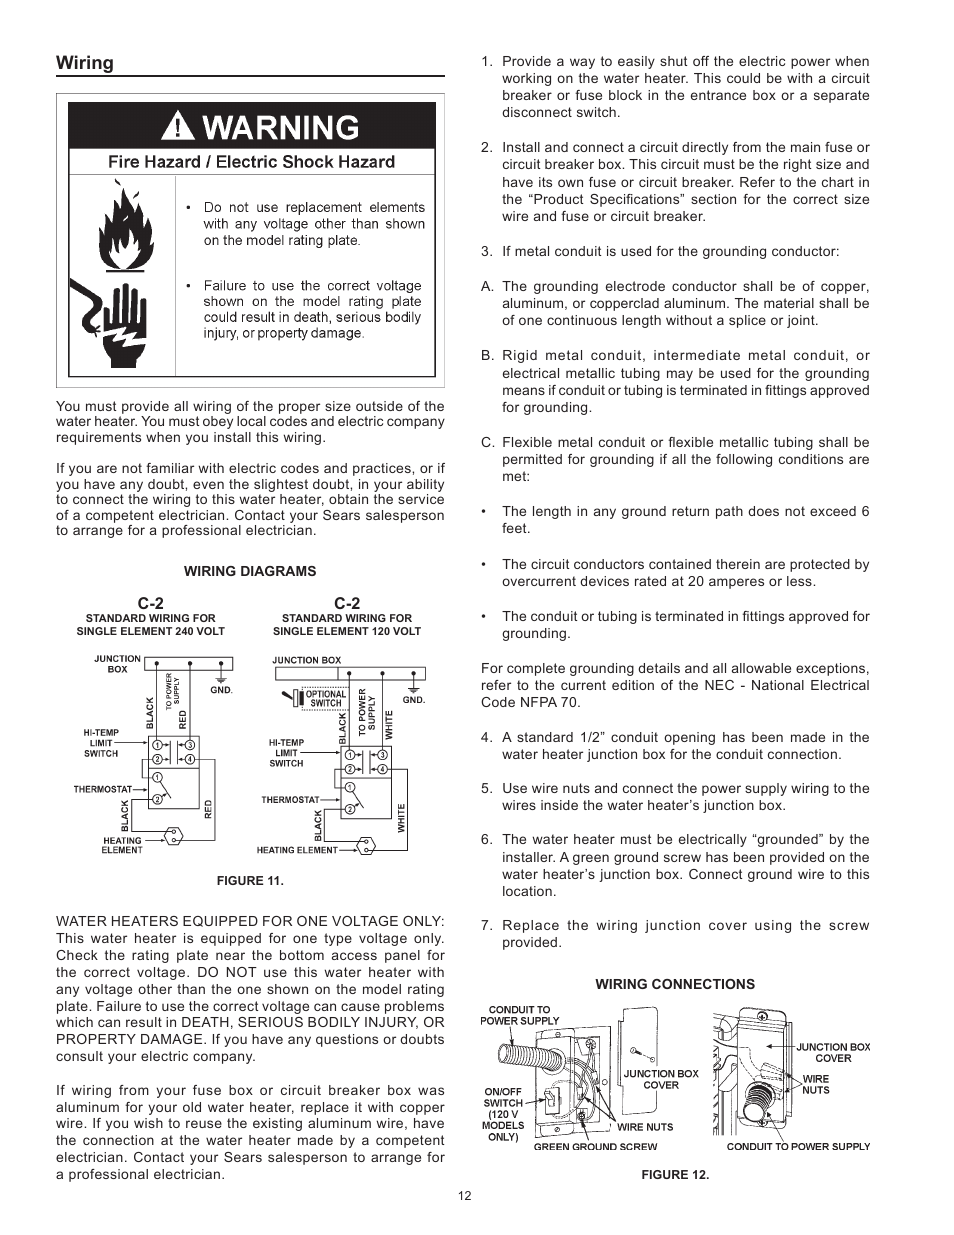 wiring | kenmore the economizer(tm) 6 compact electric 153 31604 user  manual | page 12 / 24